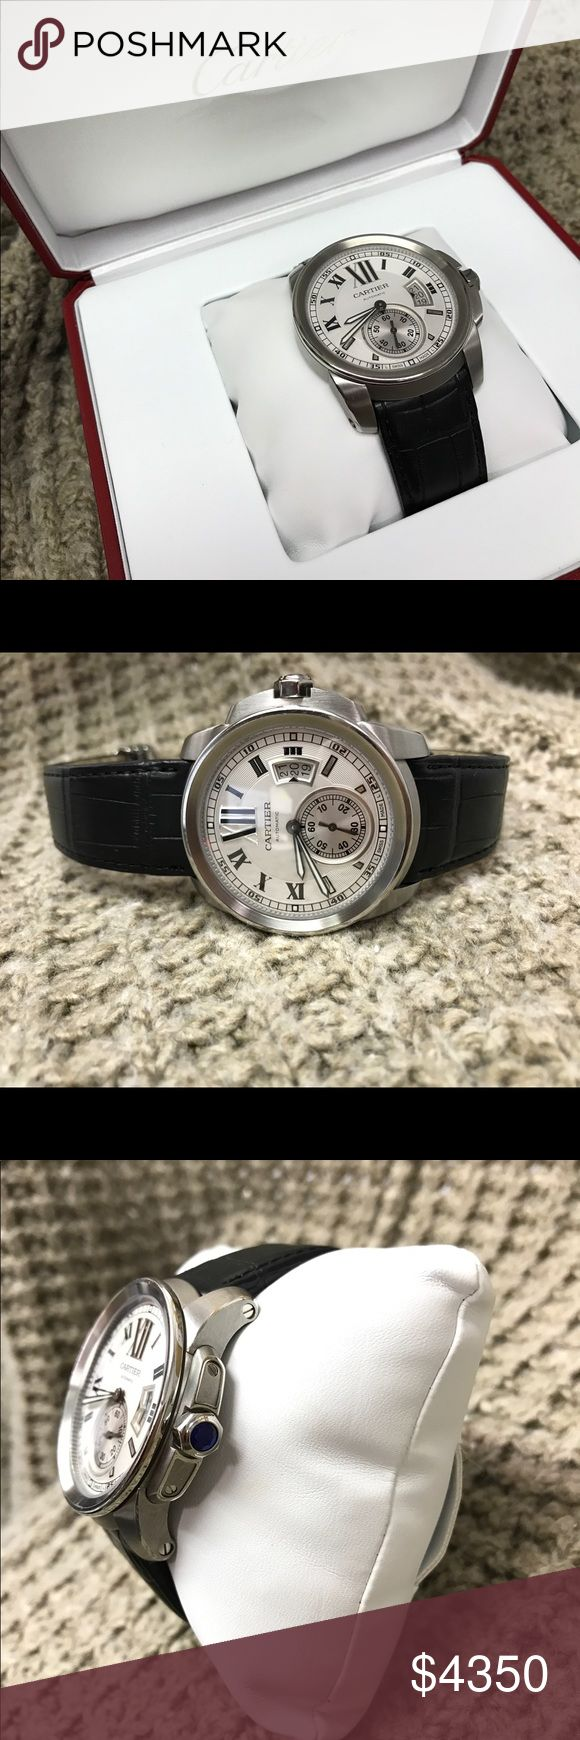 Cartier Men's Watch Authentic. Comes with paperwork, & box. Gently Used., please email for information. Chelsea_withrow92@yahoo.com. Serious inquiries only. Cartier Accessories Watches